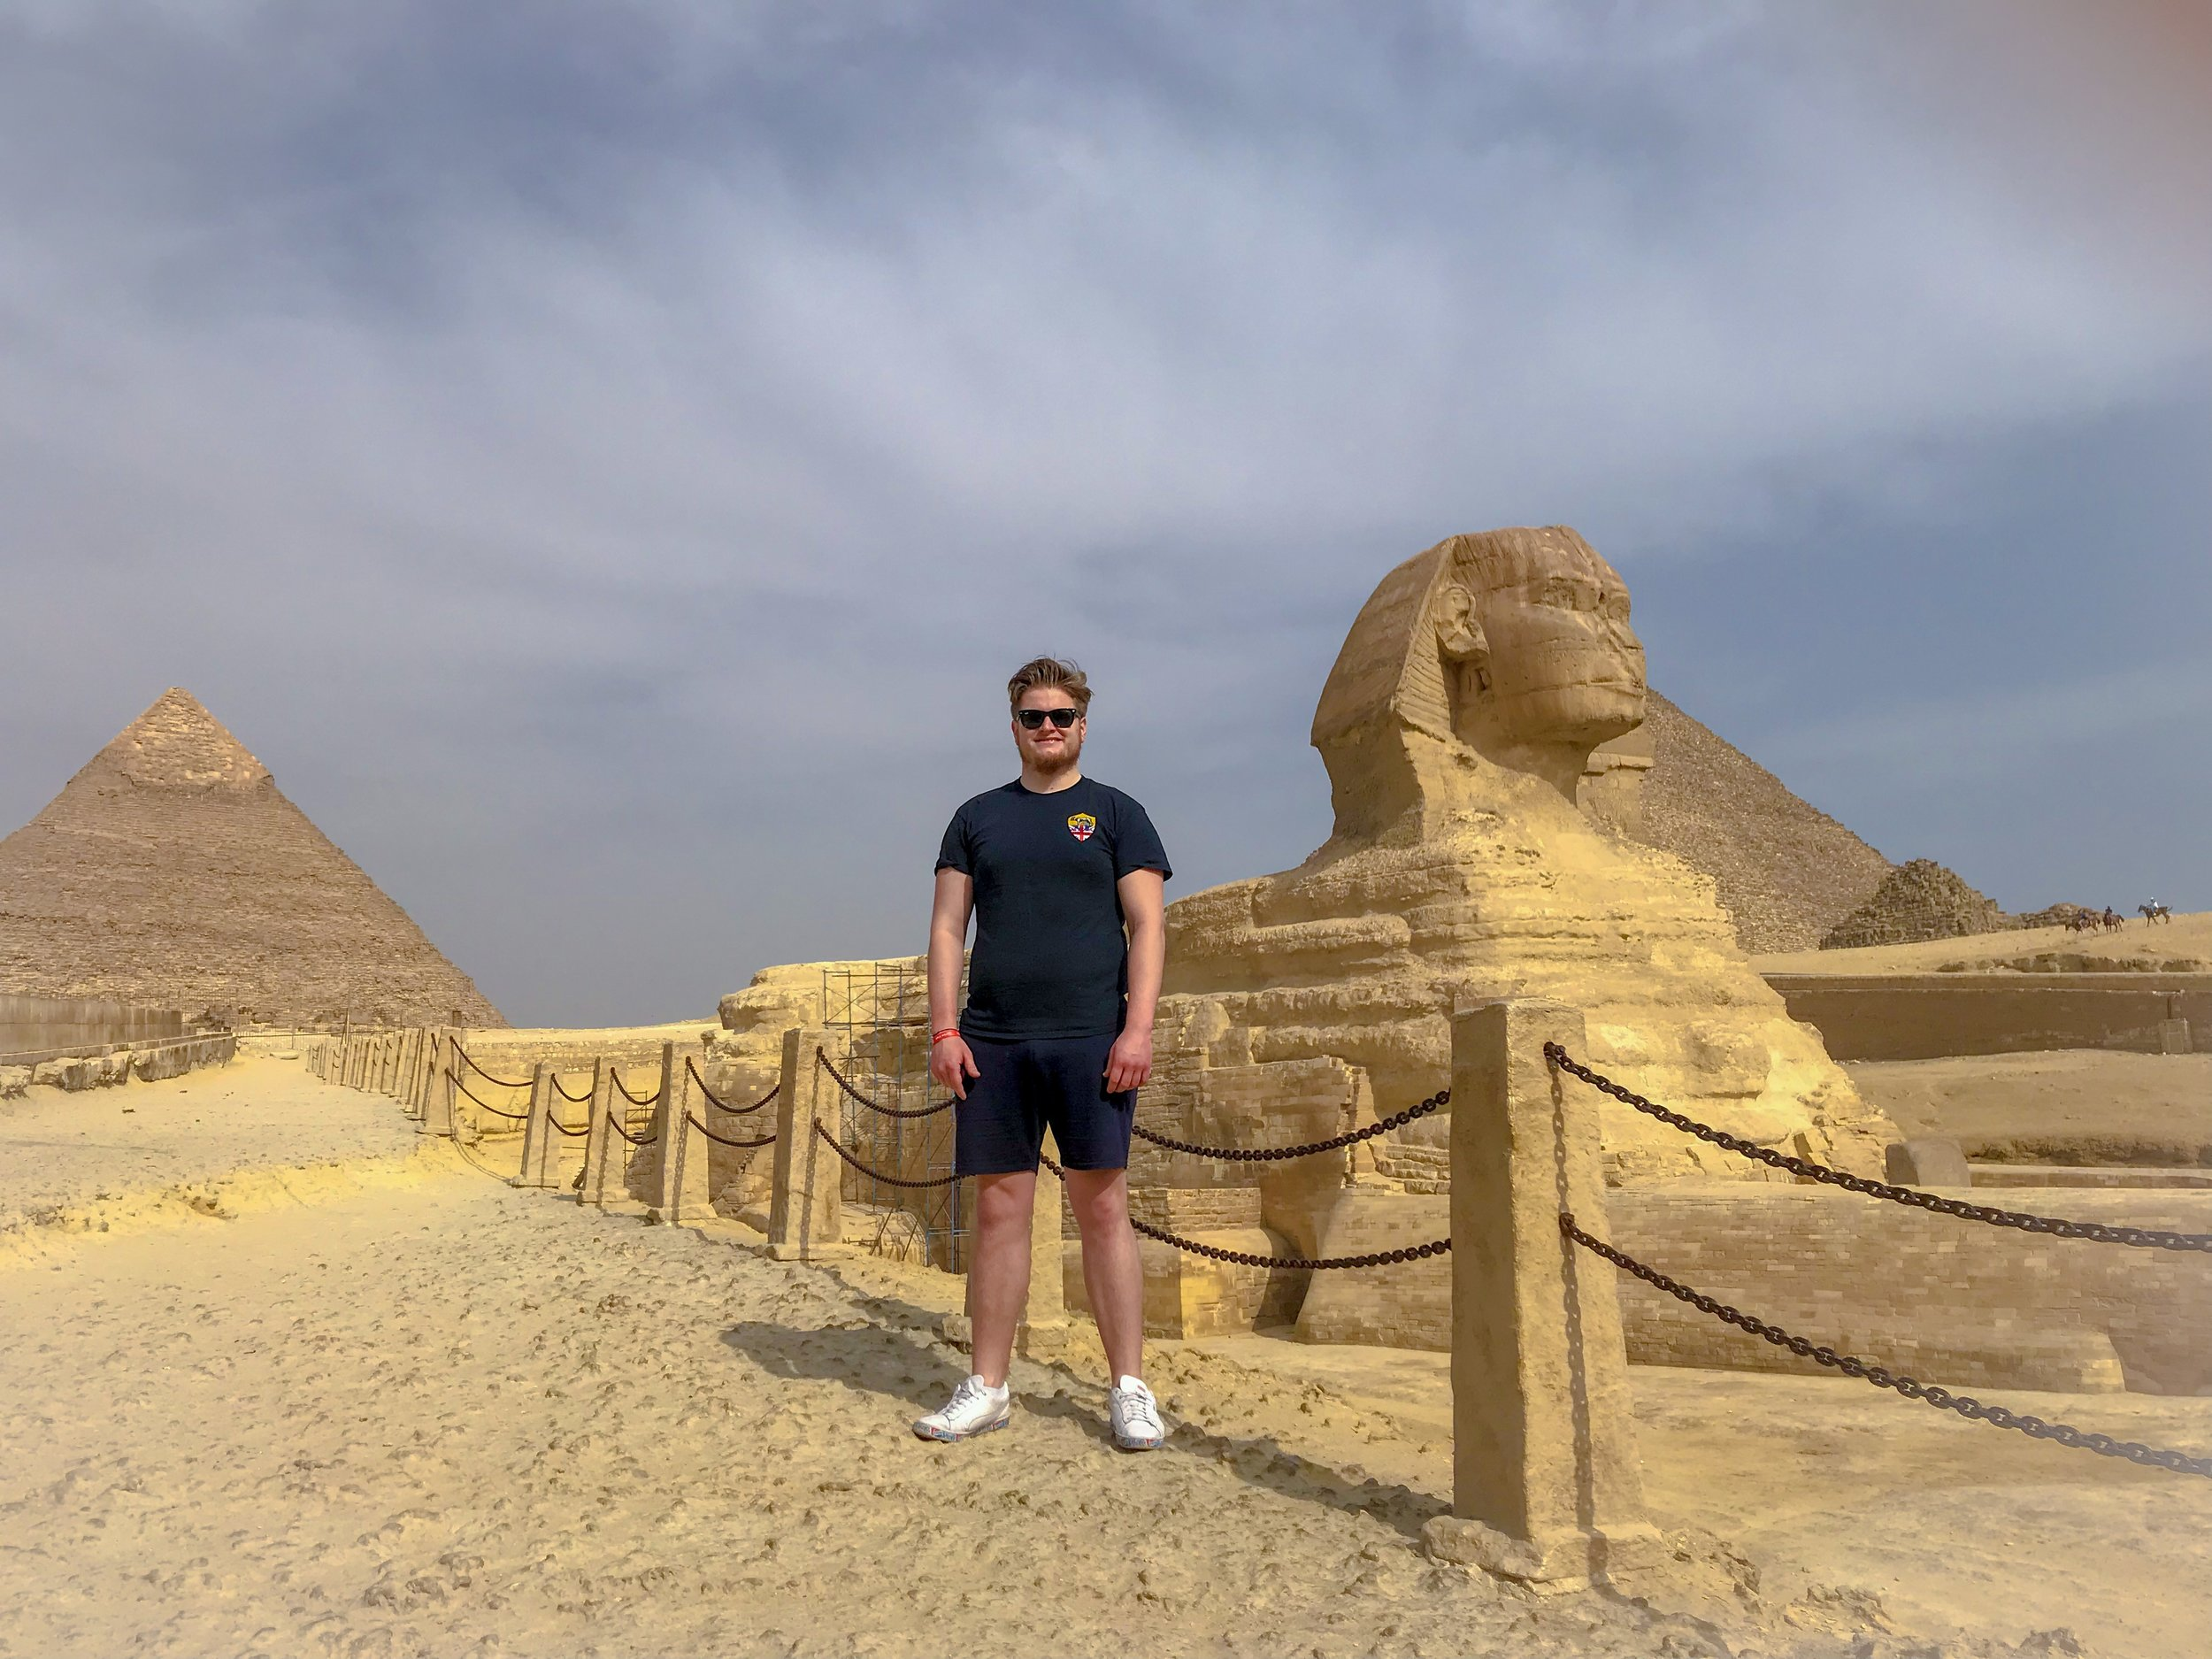 Visiting the Pyramids of Giza and Sphinx was another bucket list moment for me.